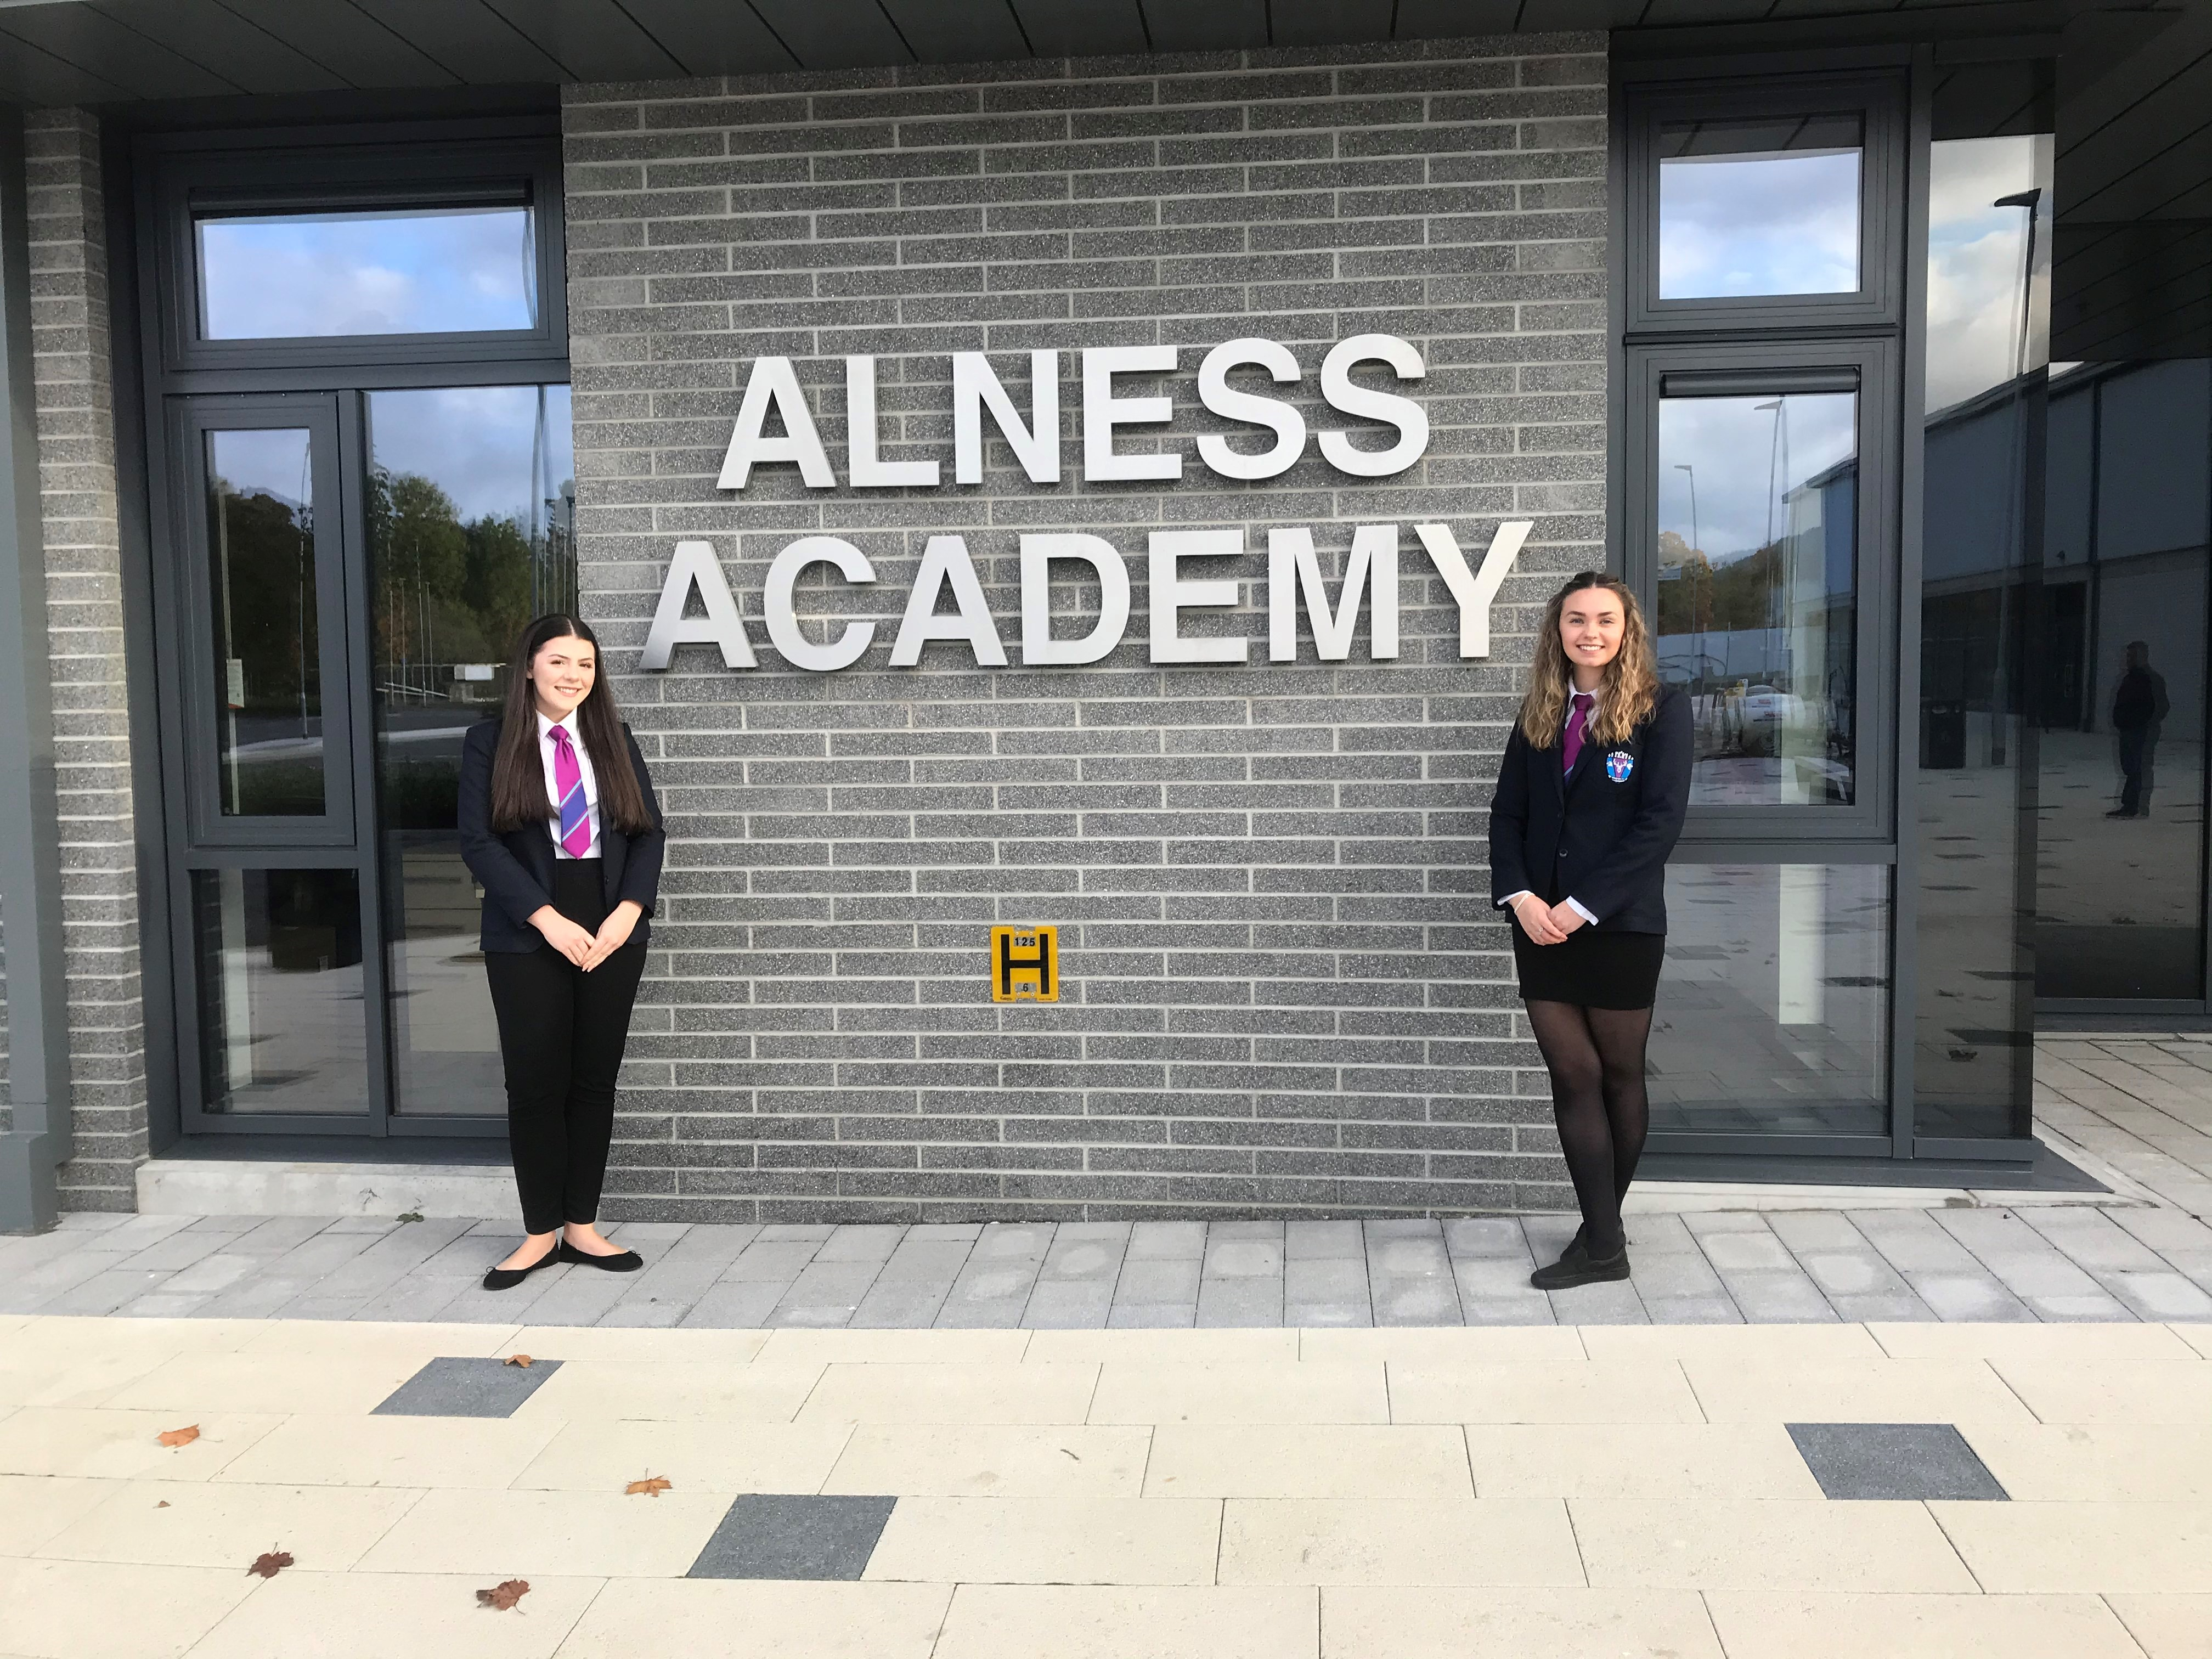 House captains stand next to Alness Academy sign